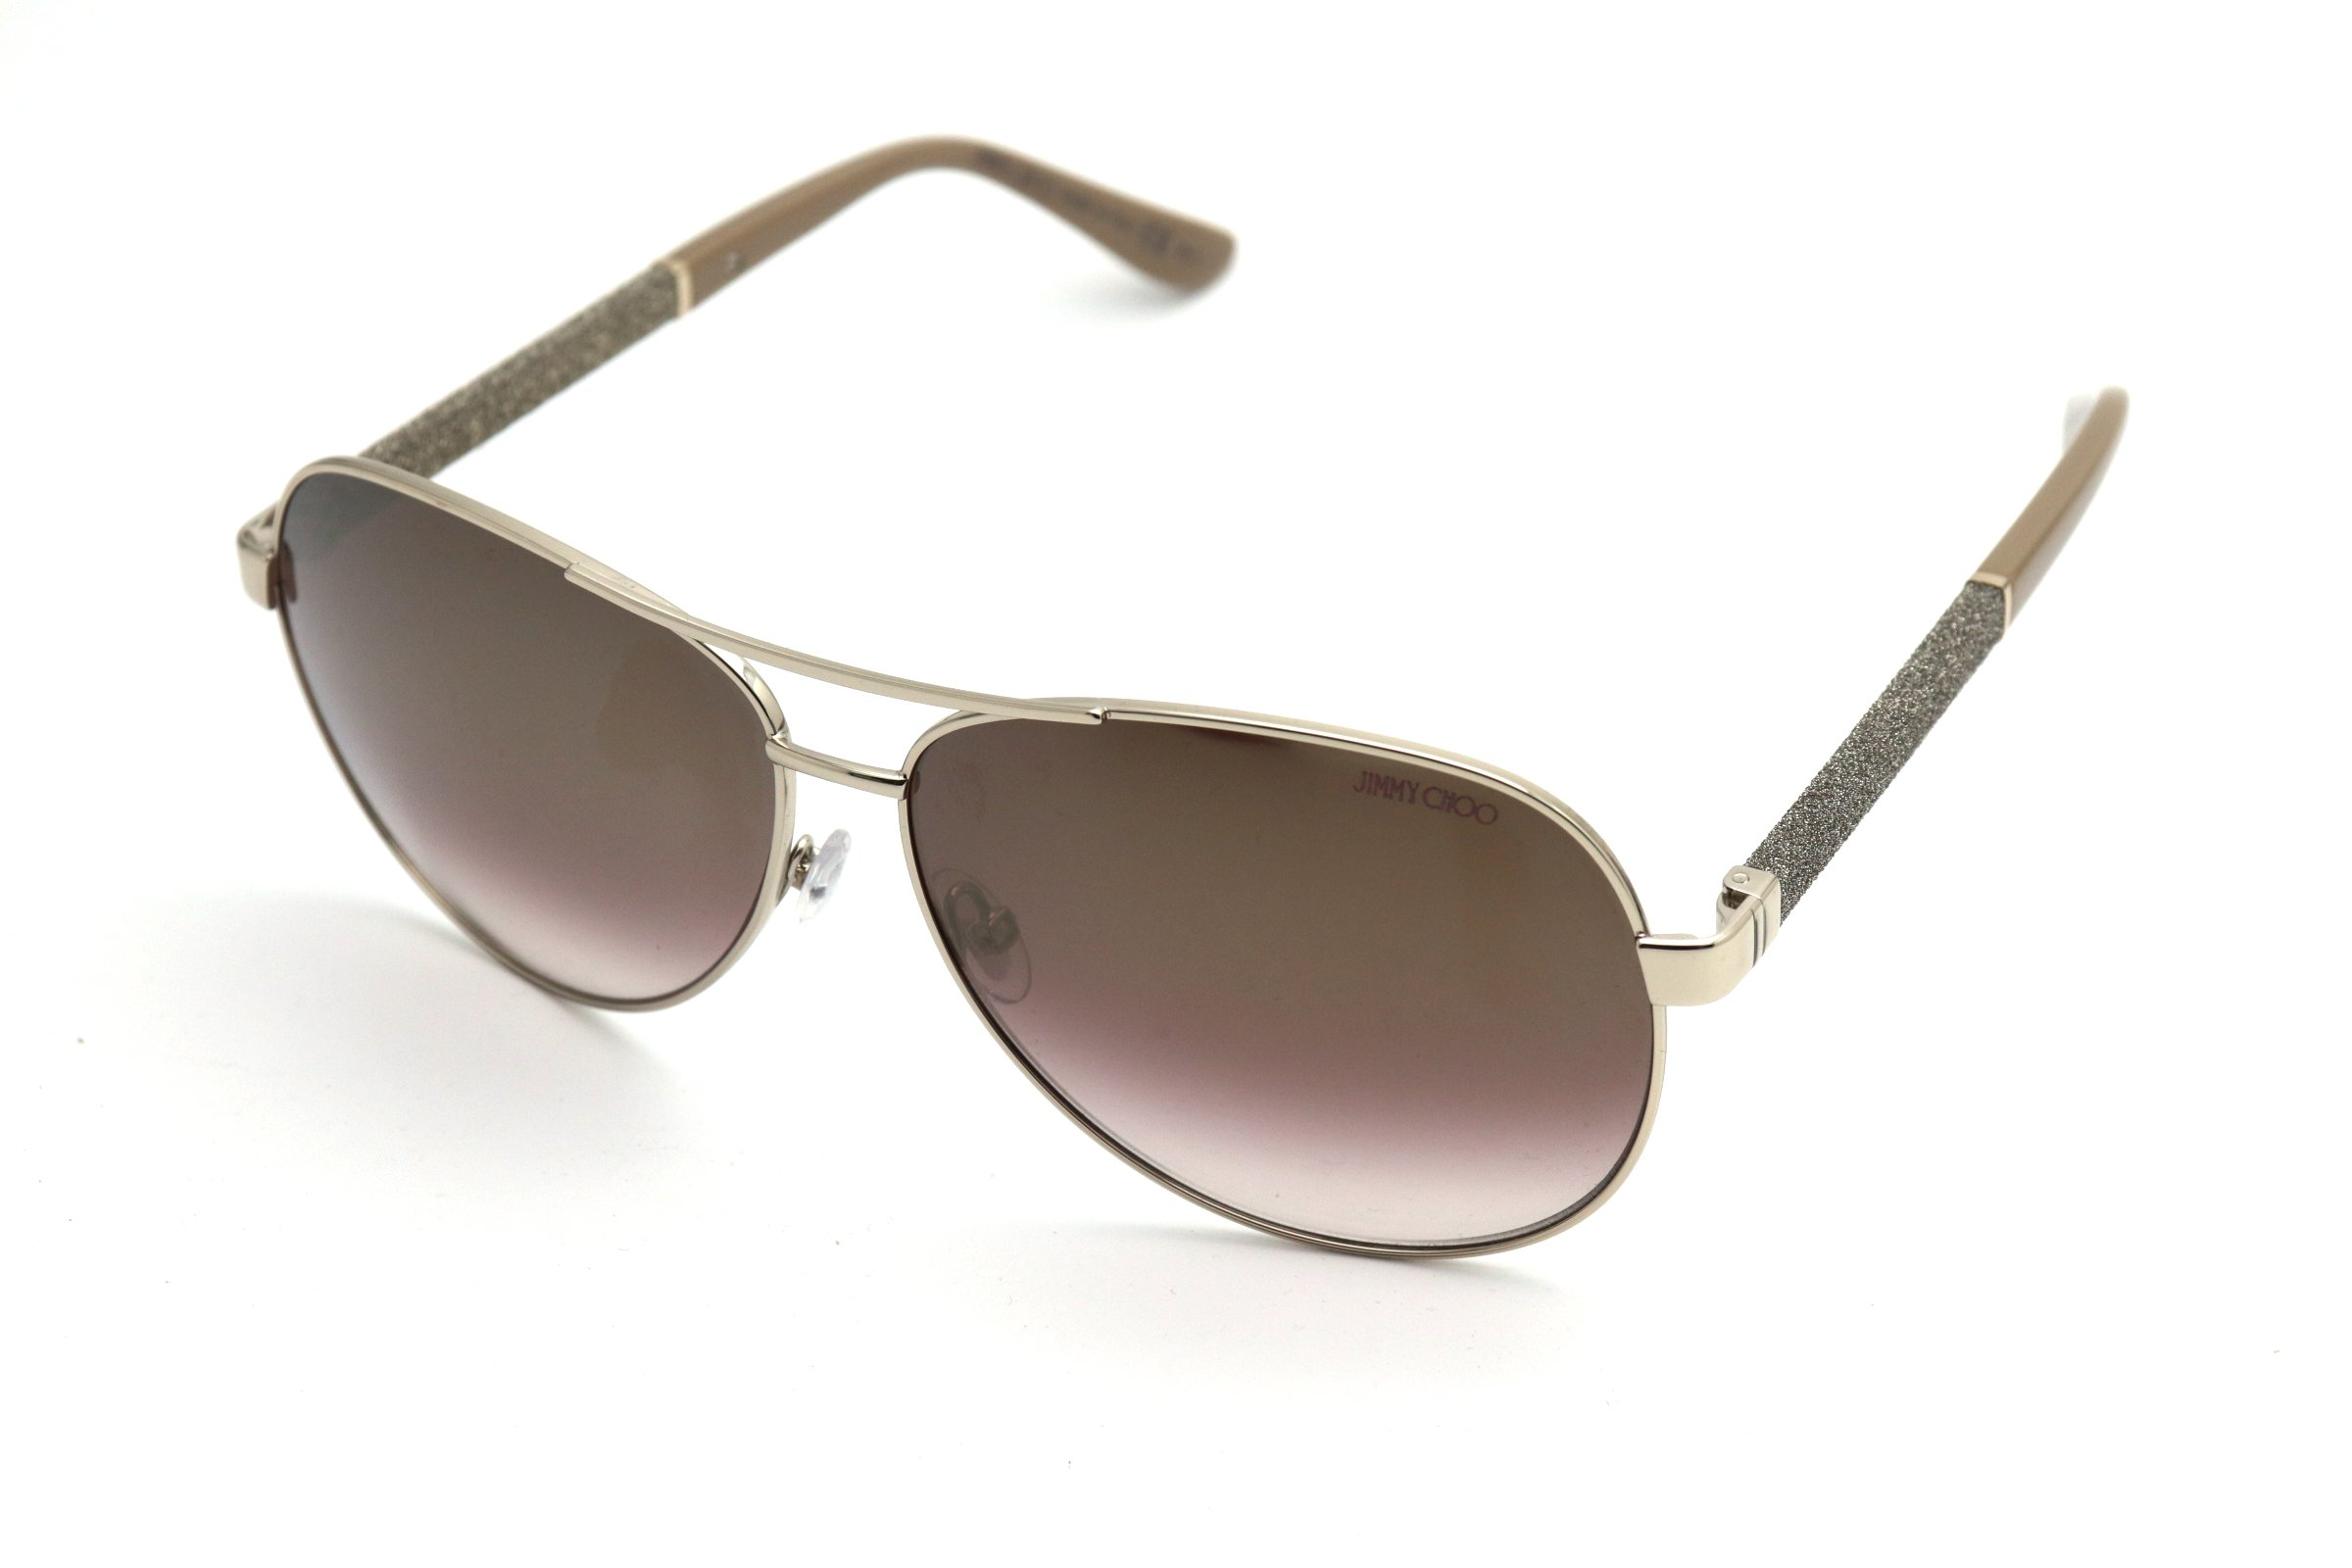 Jimmy Choo Sunglasses LEXIE/S LEXIE new color (Light Gold (QH brown mirror gold shaded lens)